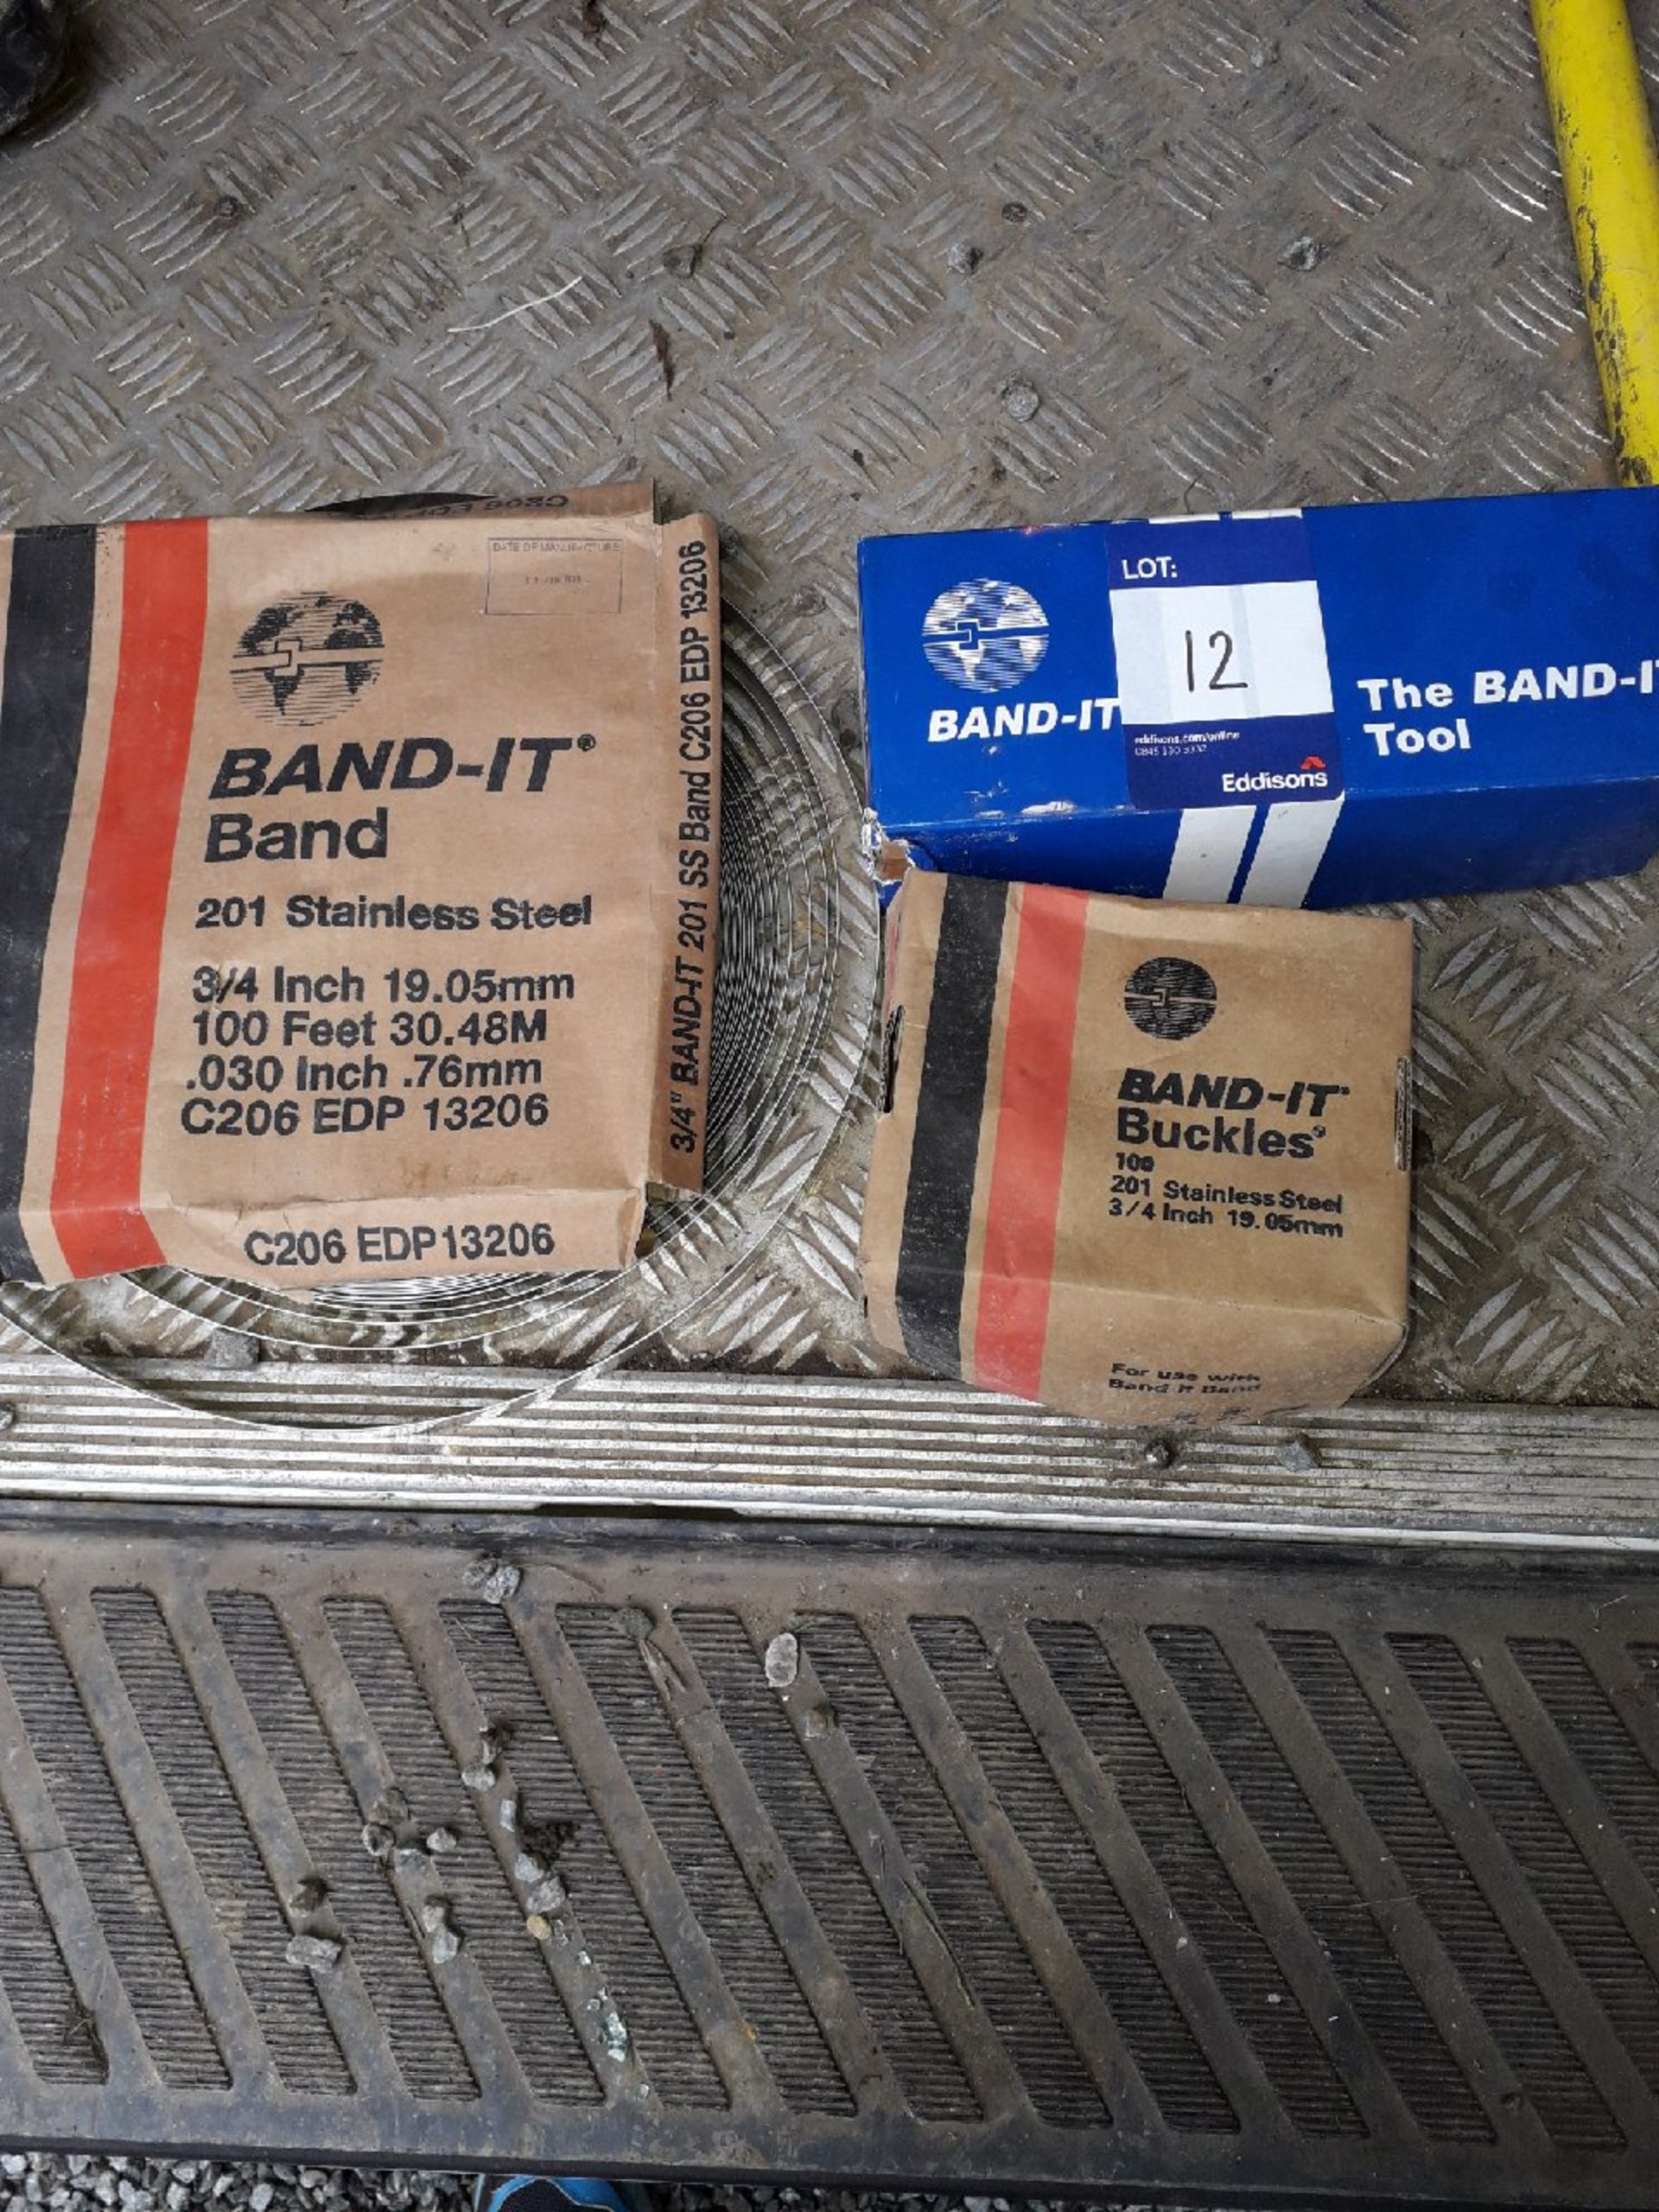 Lot 12 - 3 x Band-It items consisting of The Band-It tool, Band-It buckles, Band-It Band